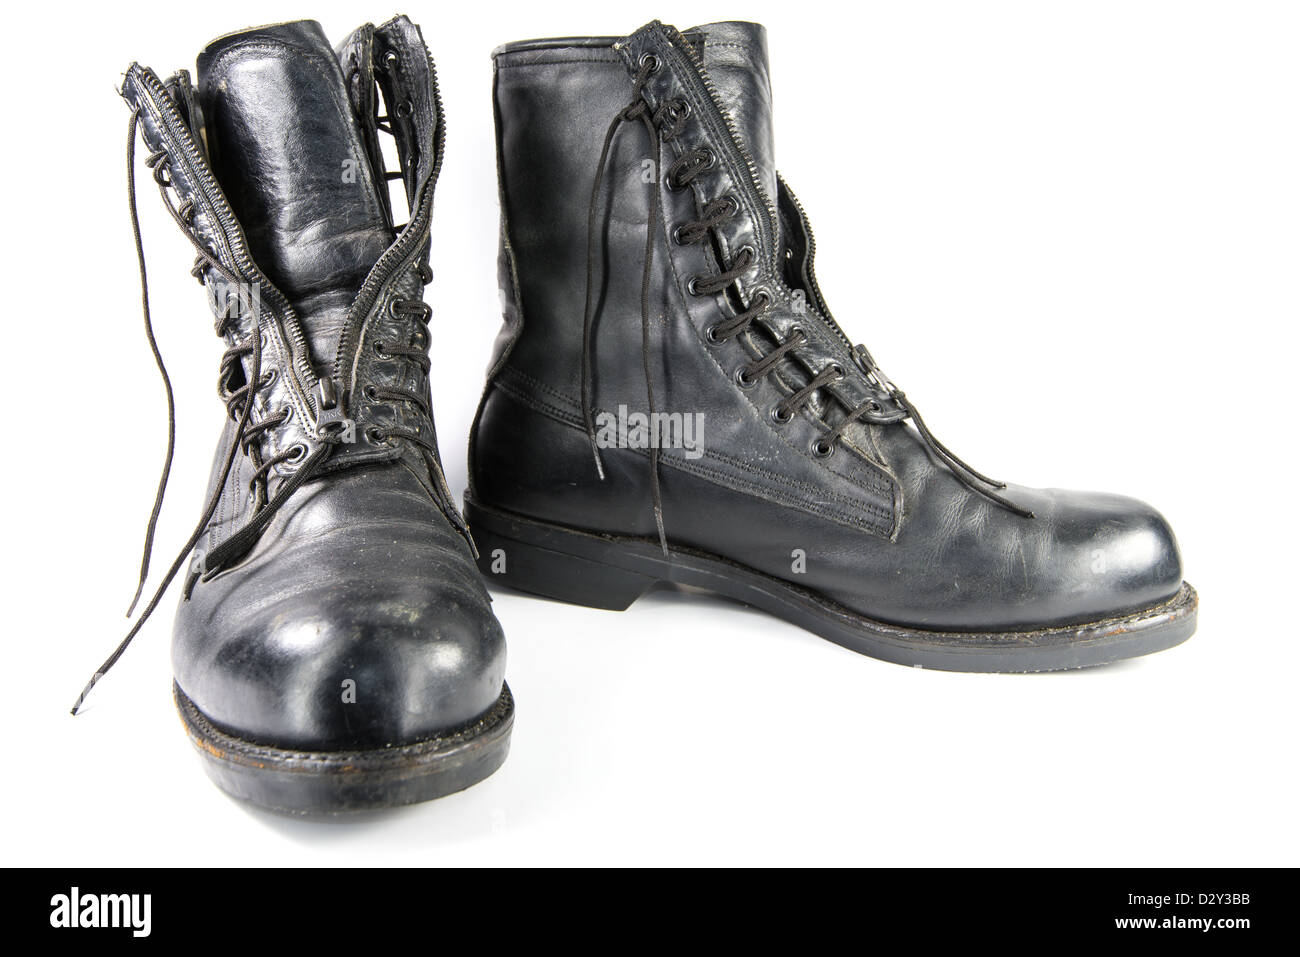 Standard issue all weather military flight boots from the United States Air  Force bd0769e3faab